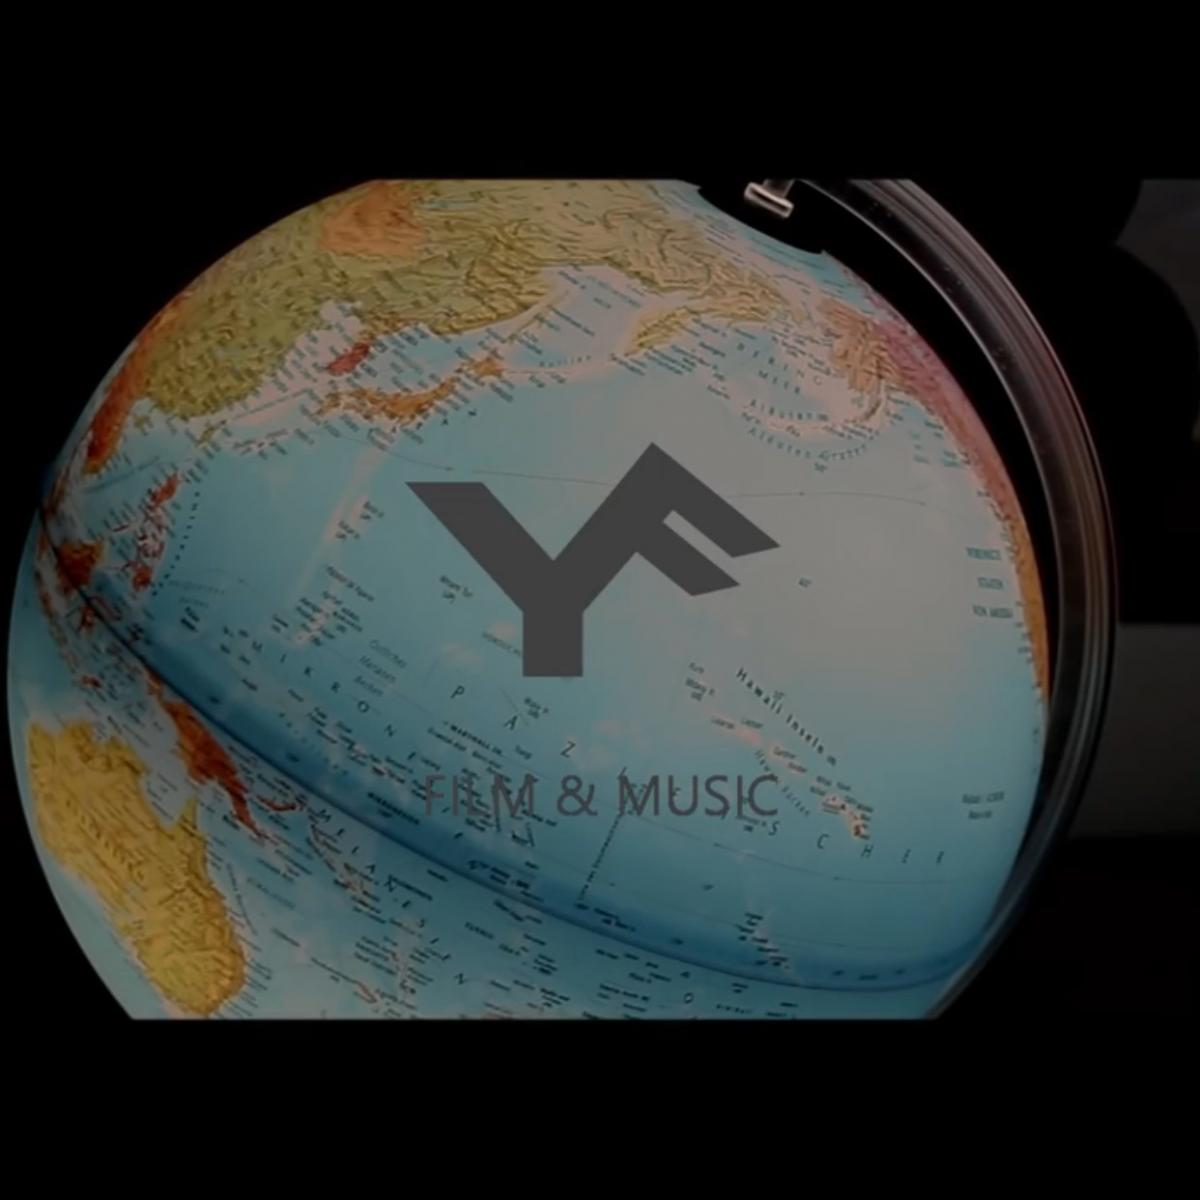 Upcoming: Yung Fly - Unsere Welt